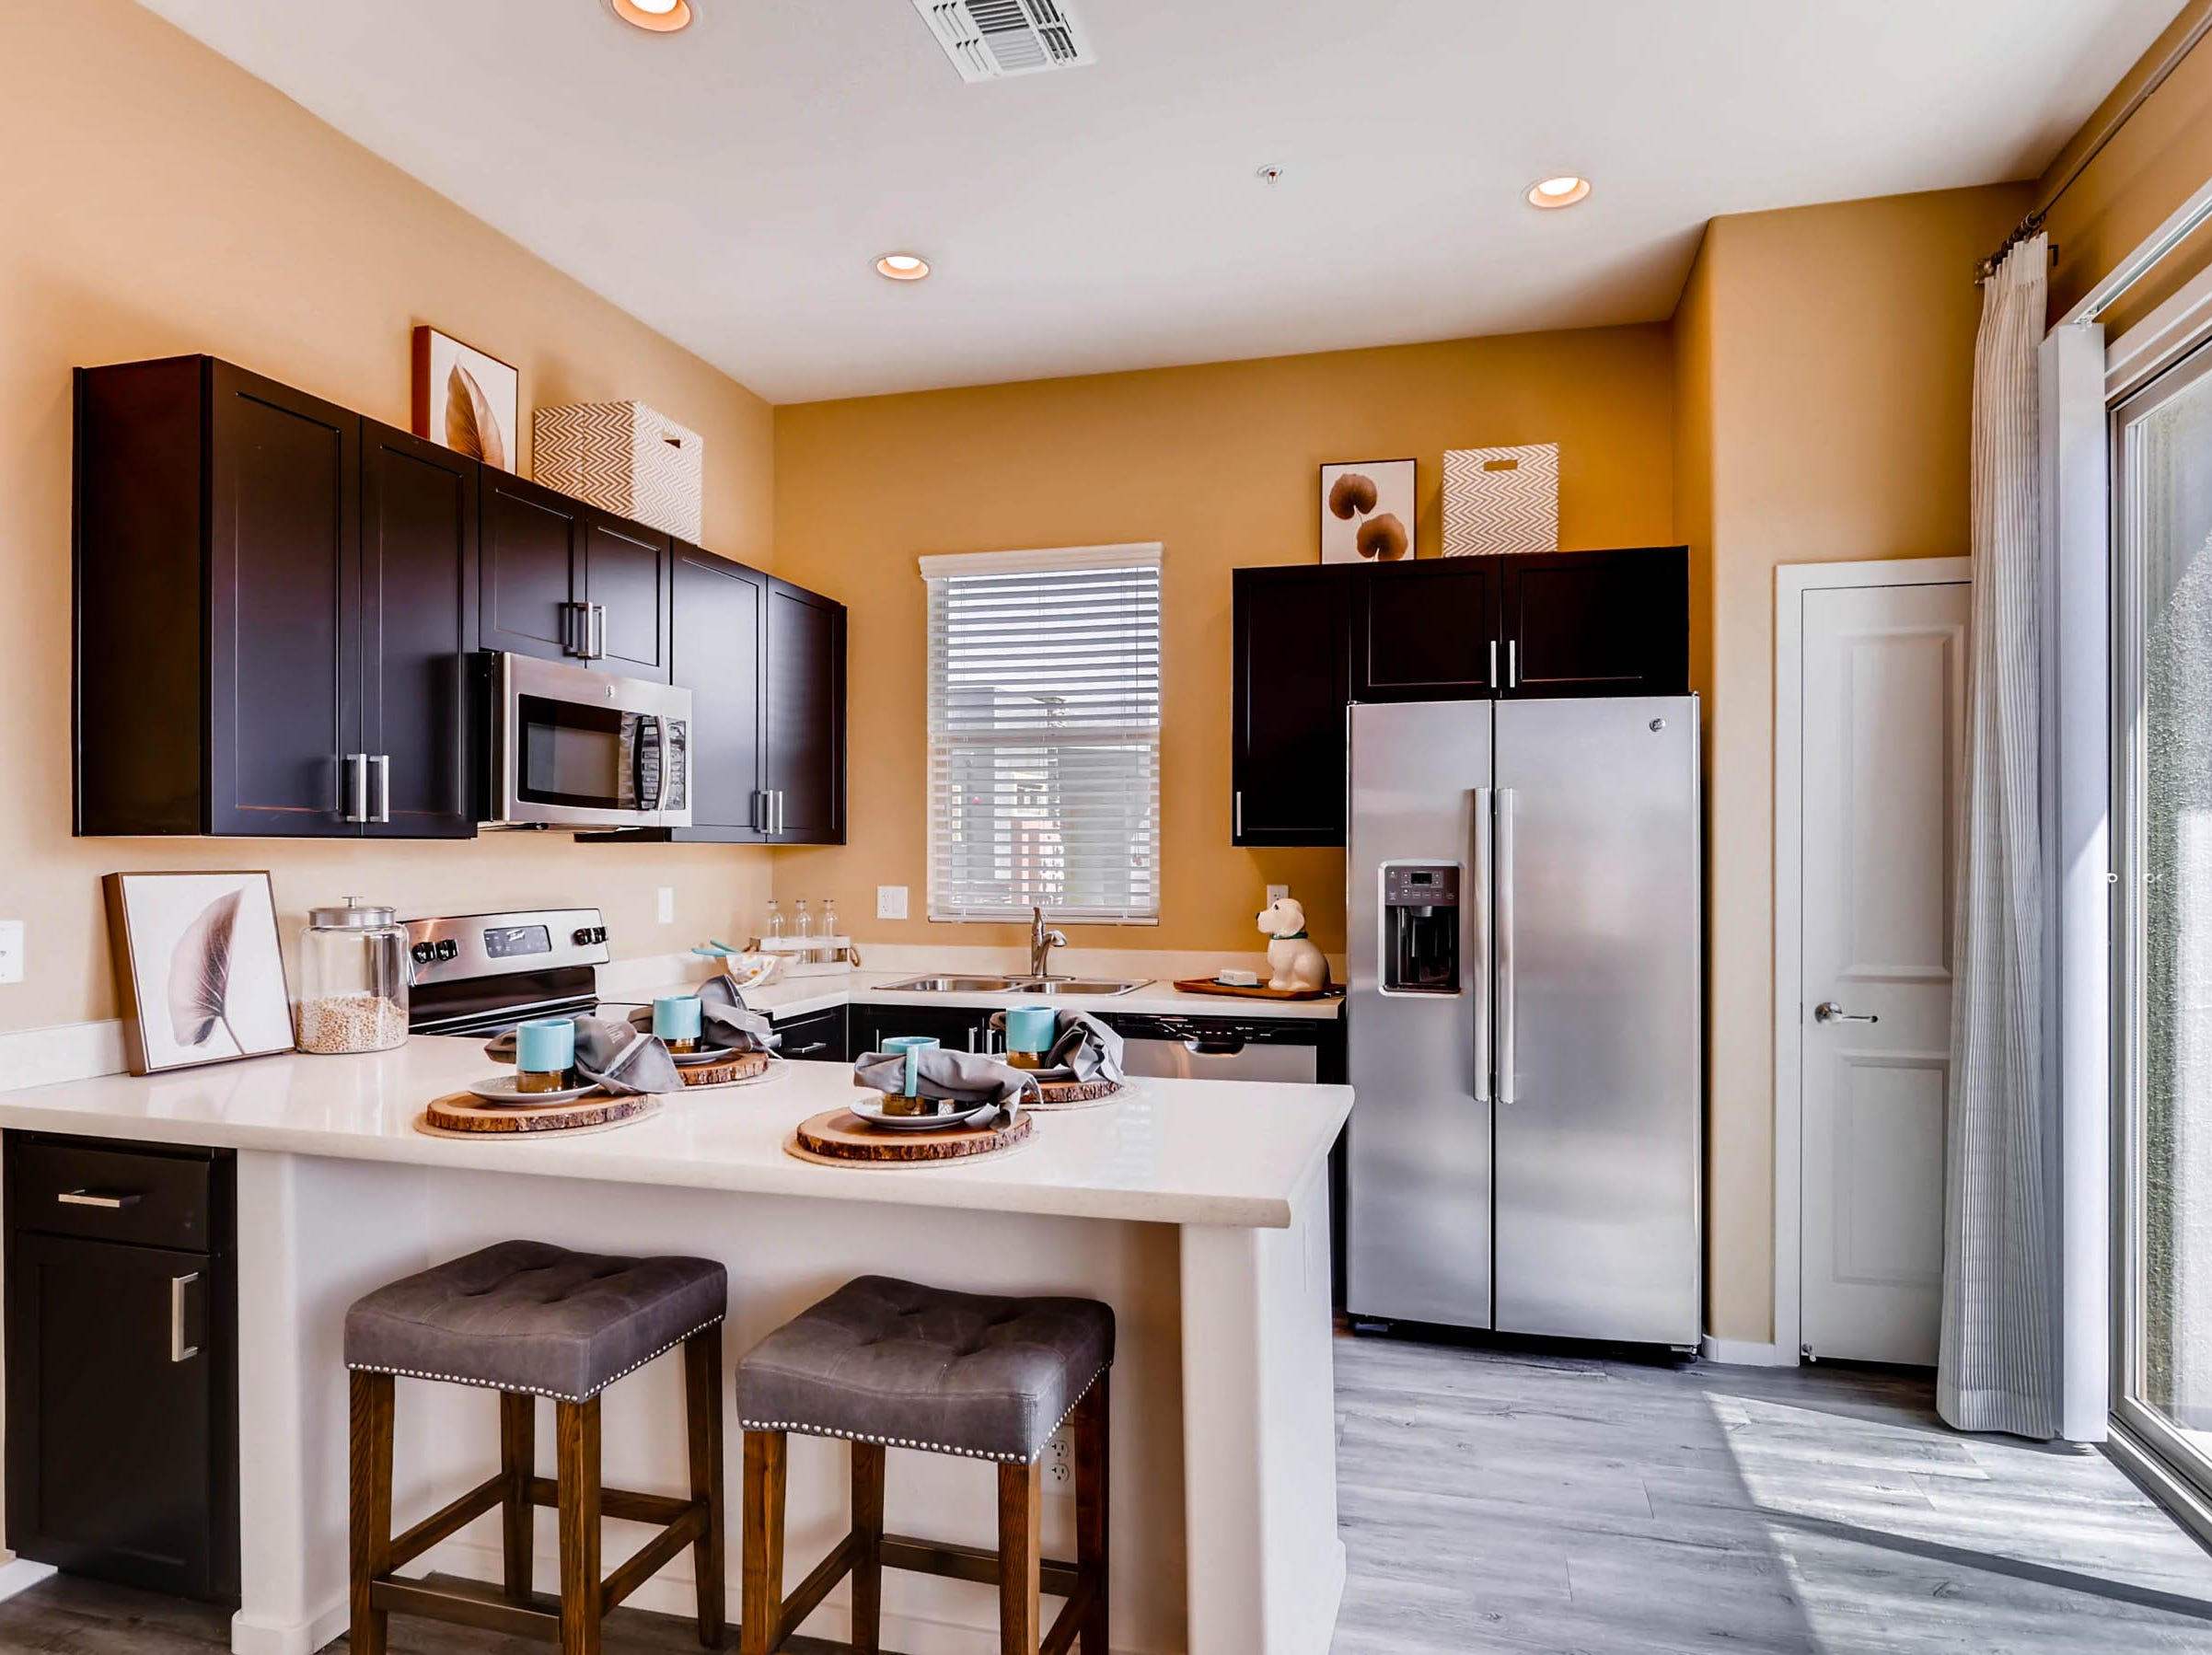 NexMetro Communities launched this new type of rental in the Valley and has 1,500 homes in several Avilla communities underway or recently completed, mostly in the East and West Valley.